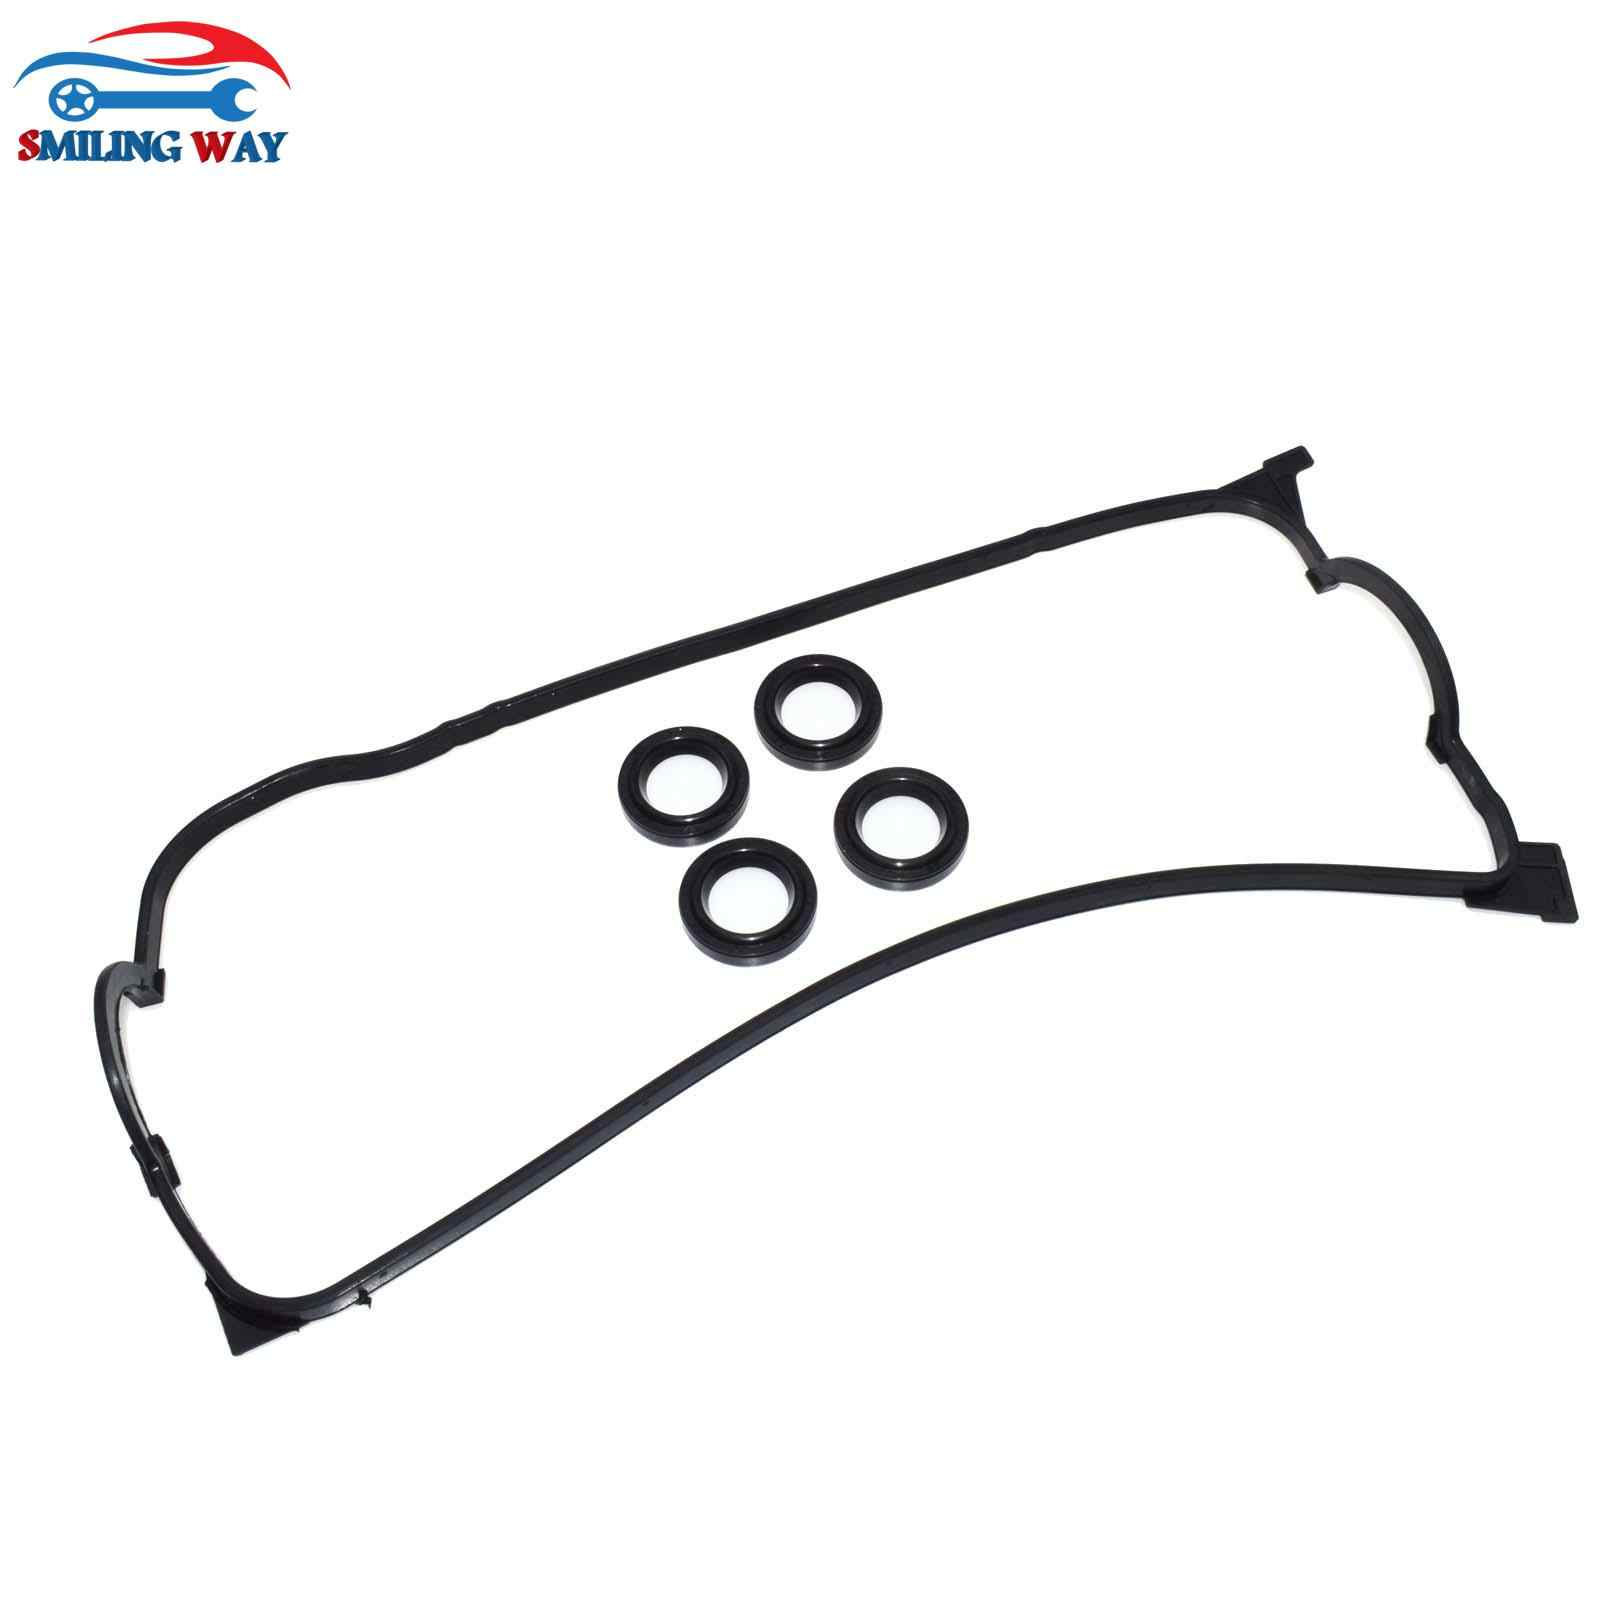 SMILING WAY# Engine Valve Cover Gasket & Spark Plug Seals ... on